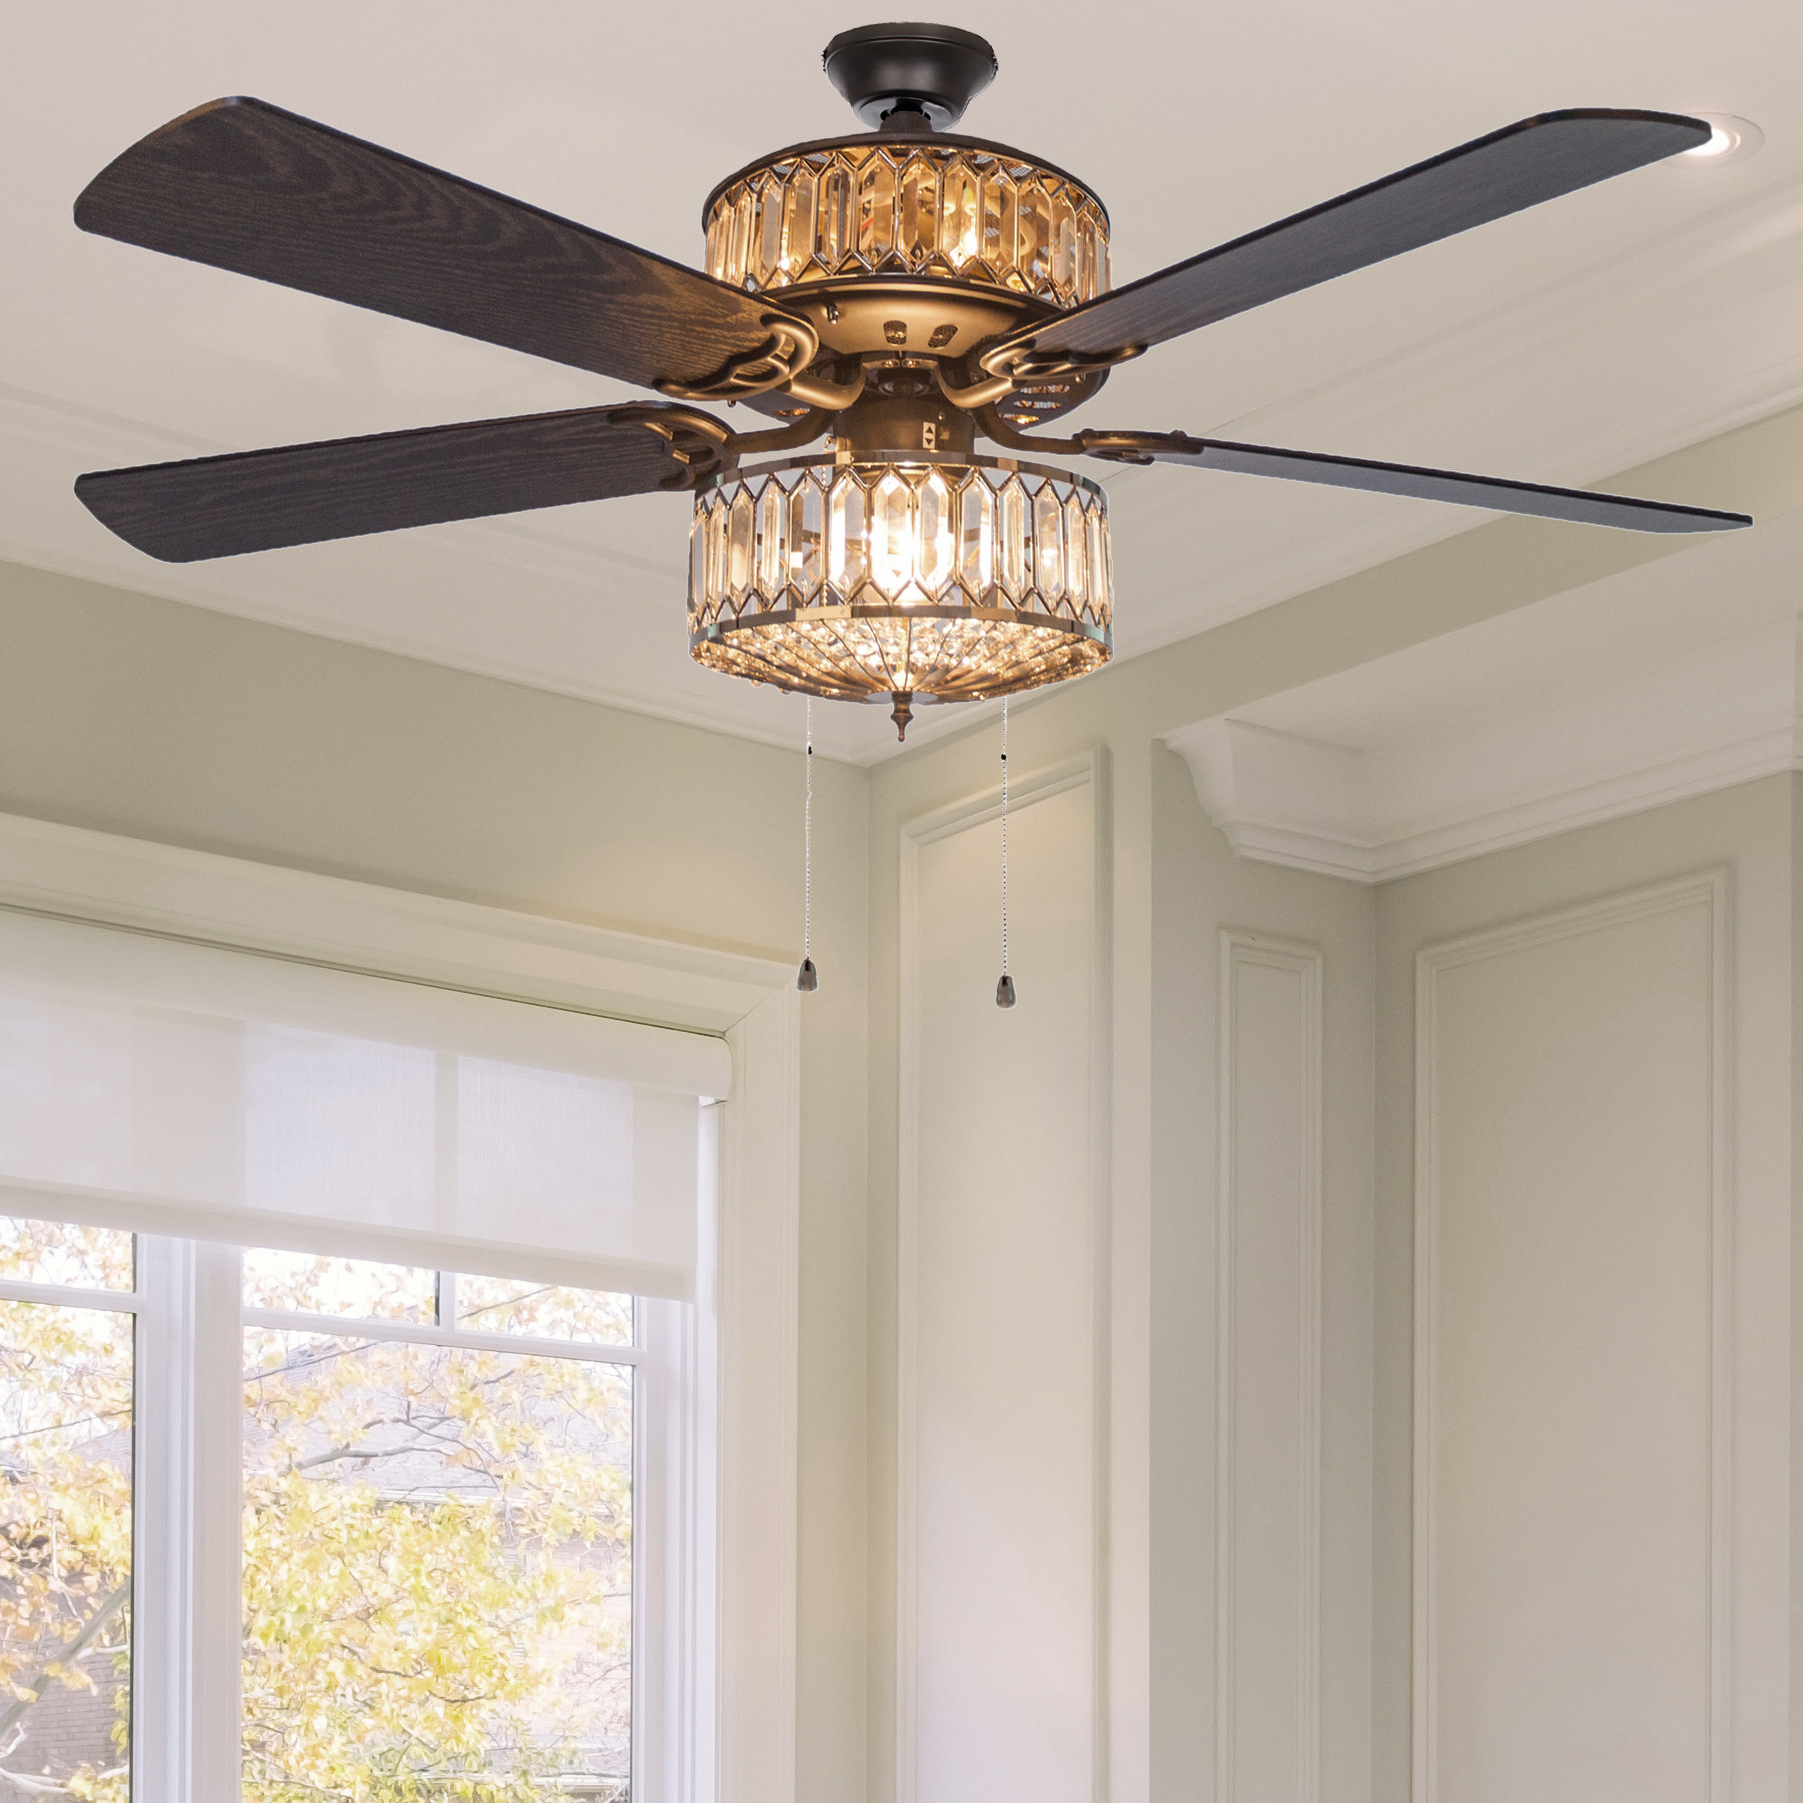 "House Of Hampton 52"" Norah 5 Blade Ceiling Fan With Remote Throughout 2019 Njie Caged Crystal 5 Blade Ceiling Fans (View 12 of 20)"